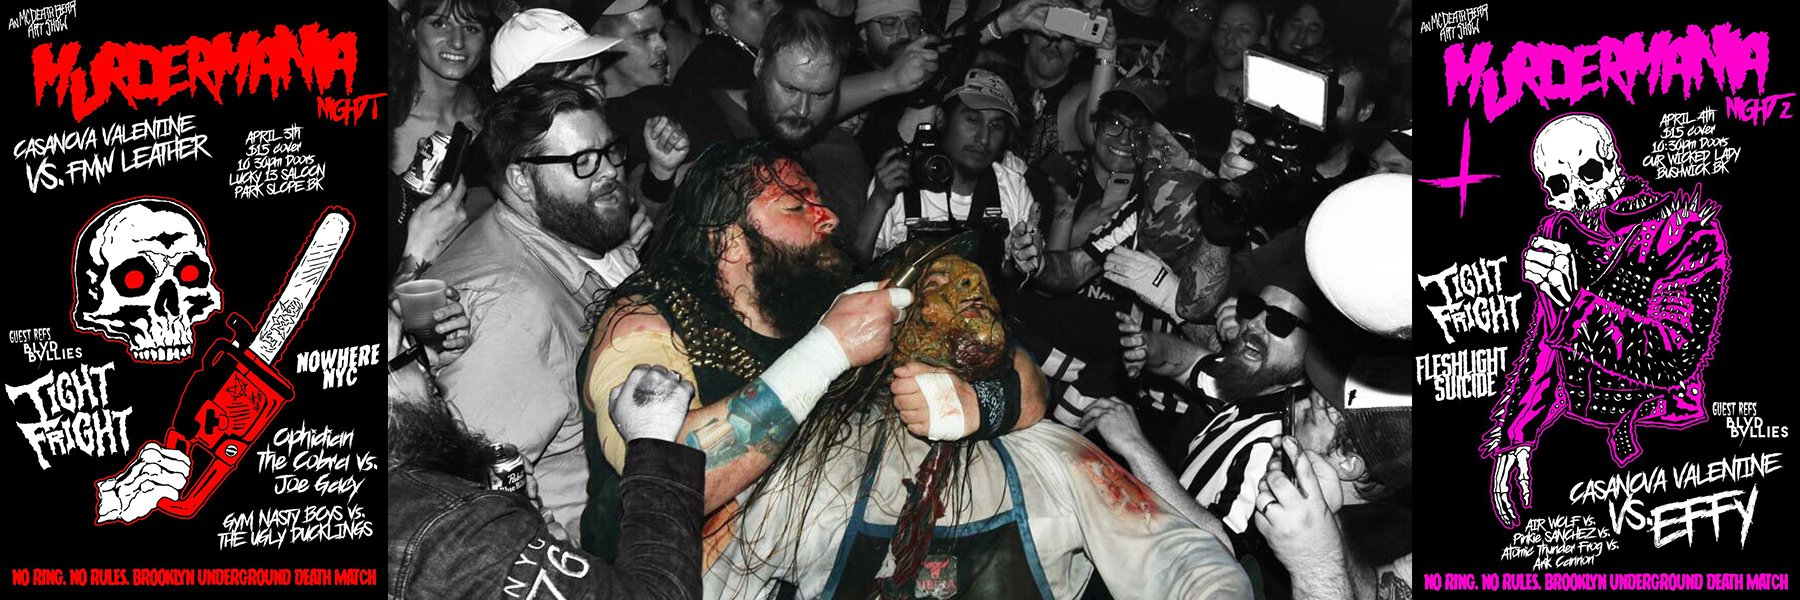 This is MurderMania! No Ring, No Rules, Underground Death Match